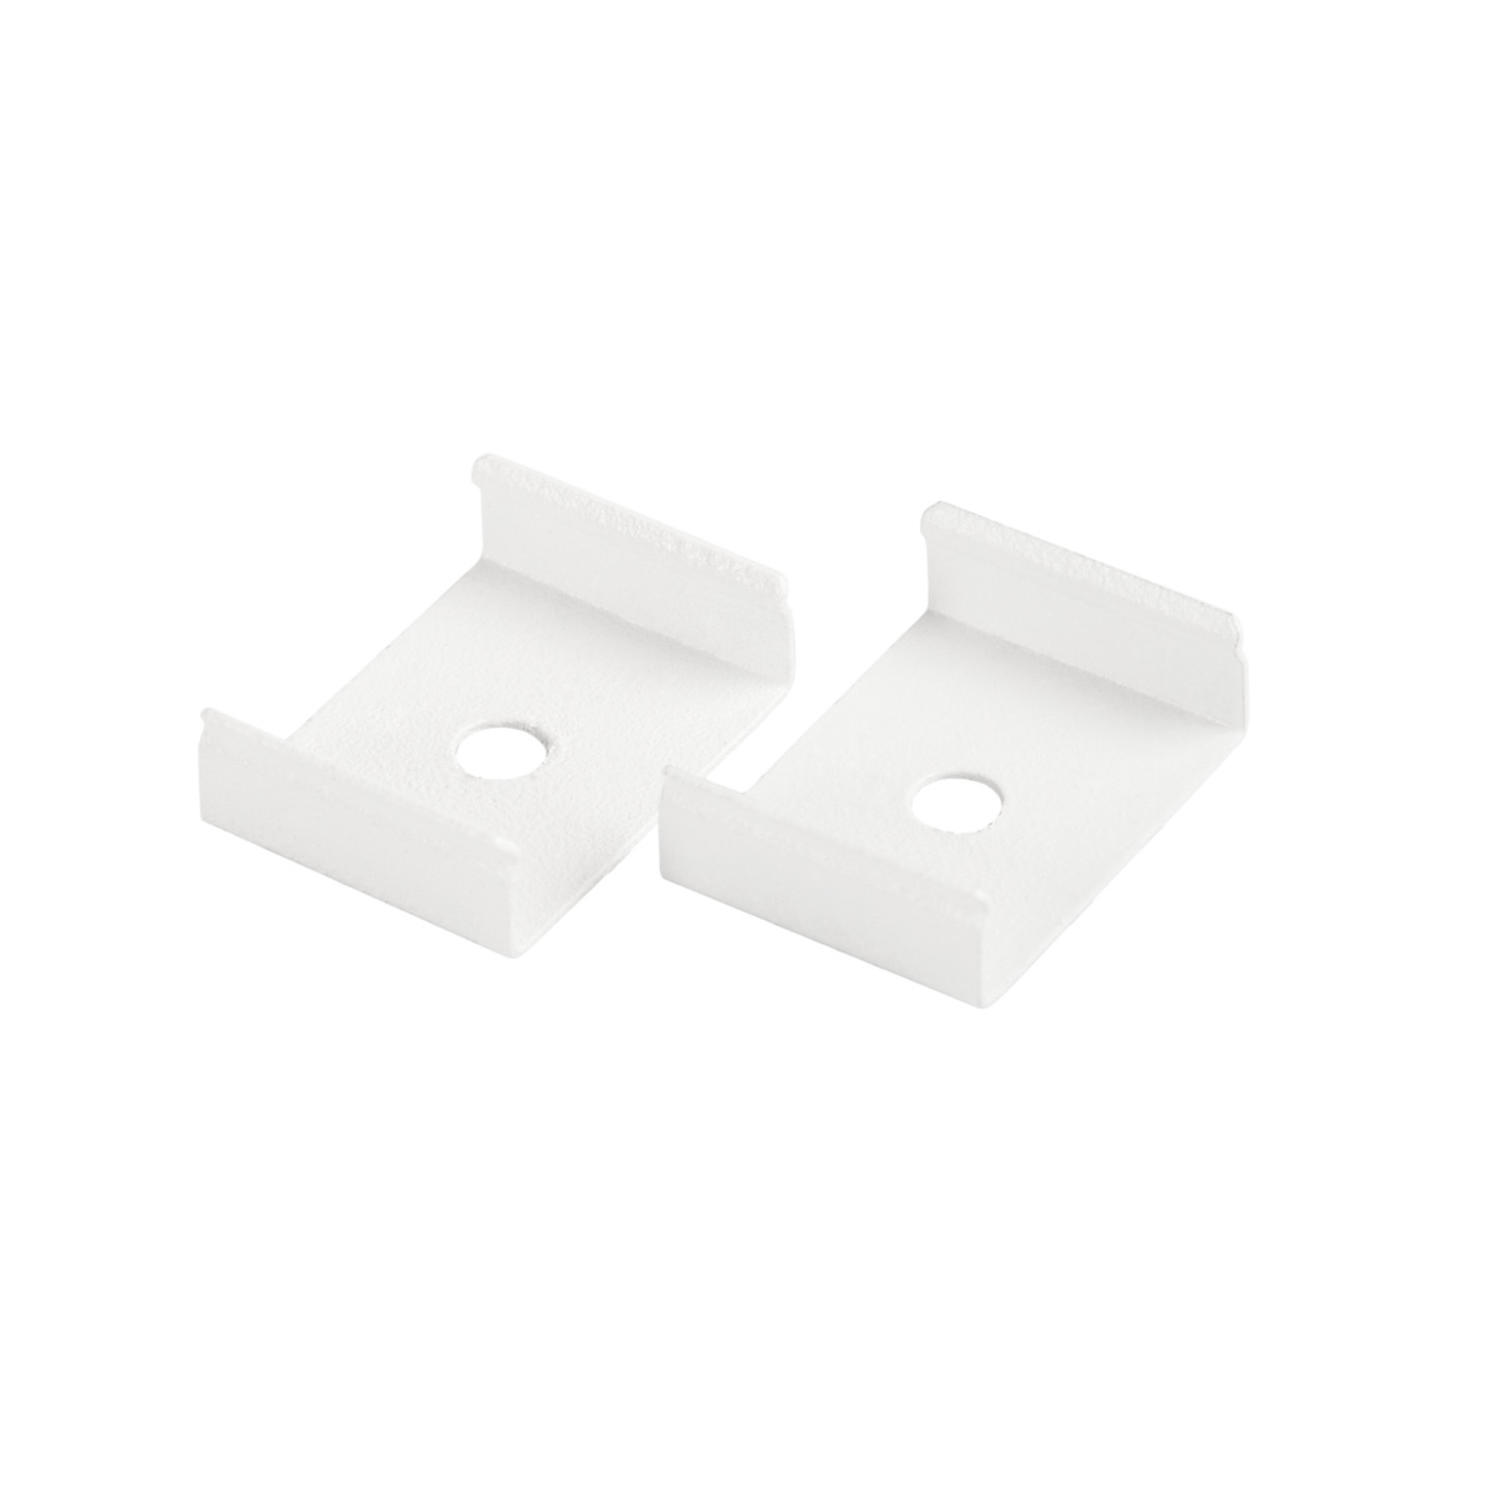 Clips Art White 2pcs